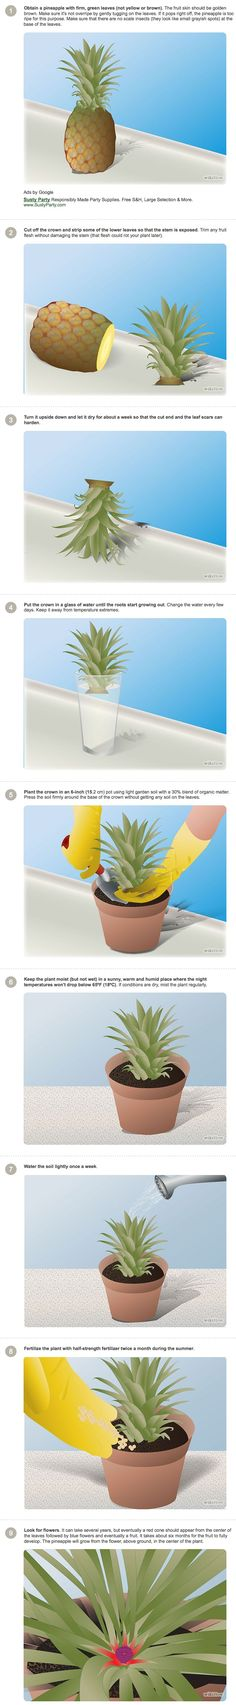 How to grow a pineapple - wonder if this works?